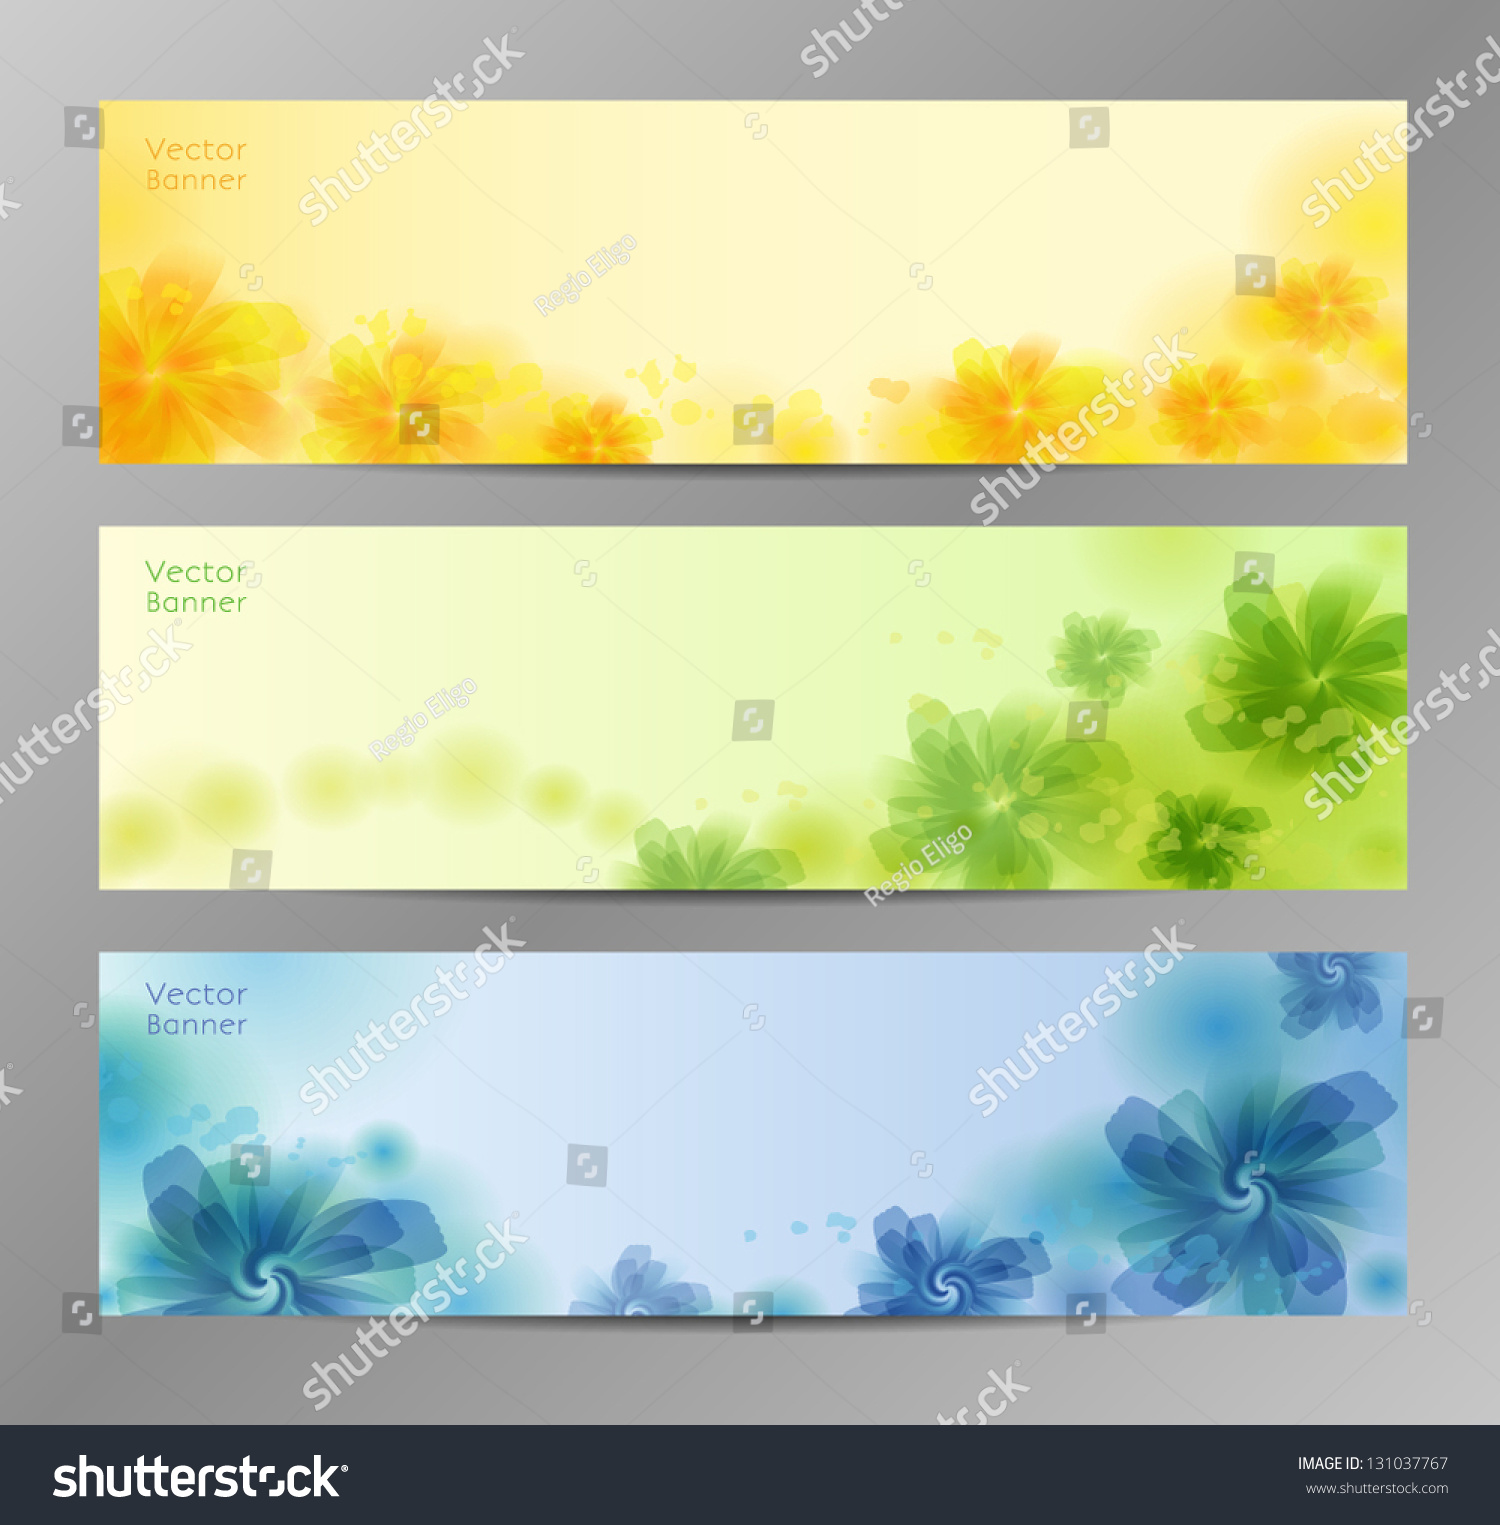 Abstract Flower Vector Background Brochure Template Stock